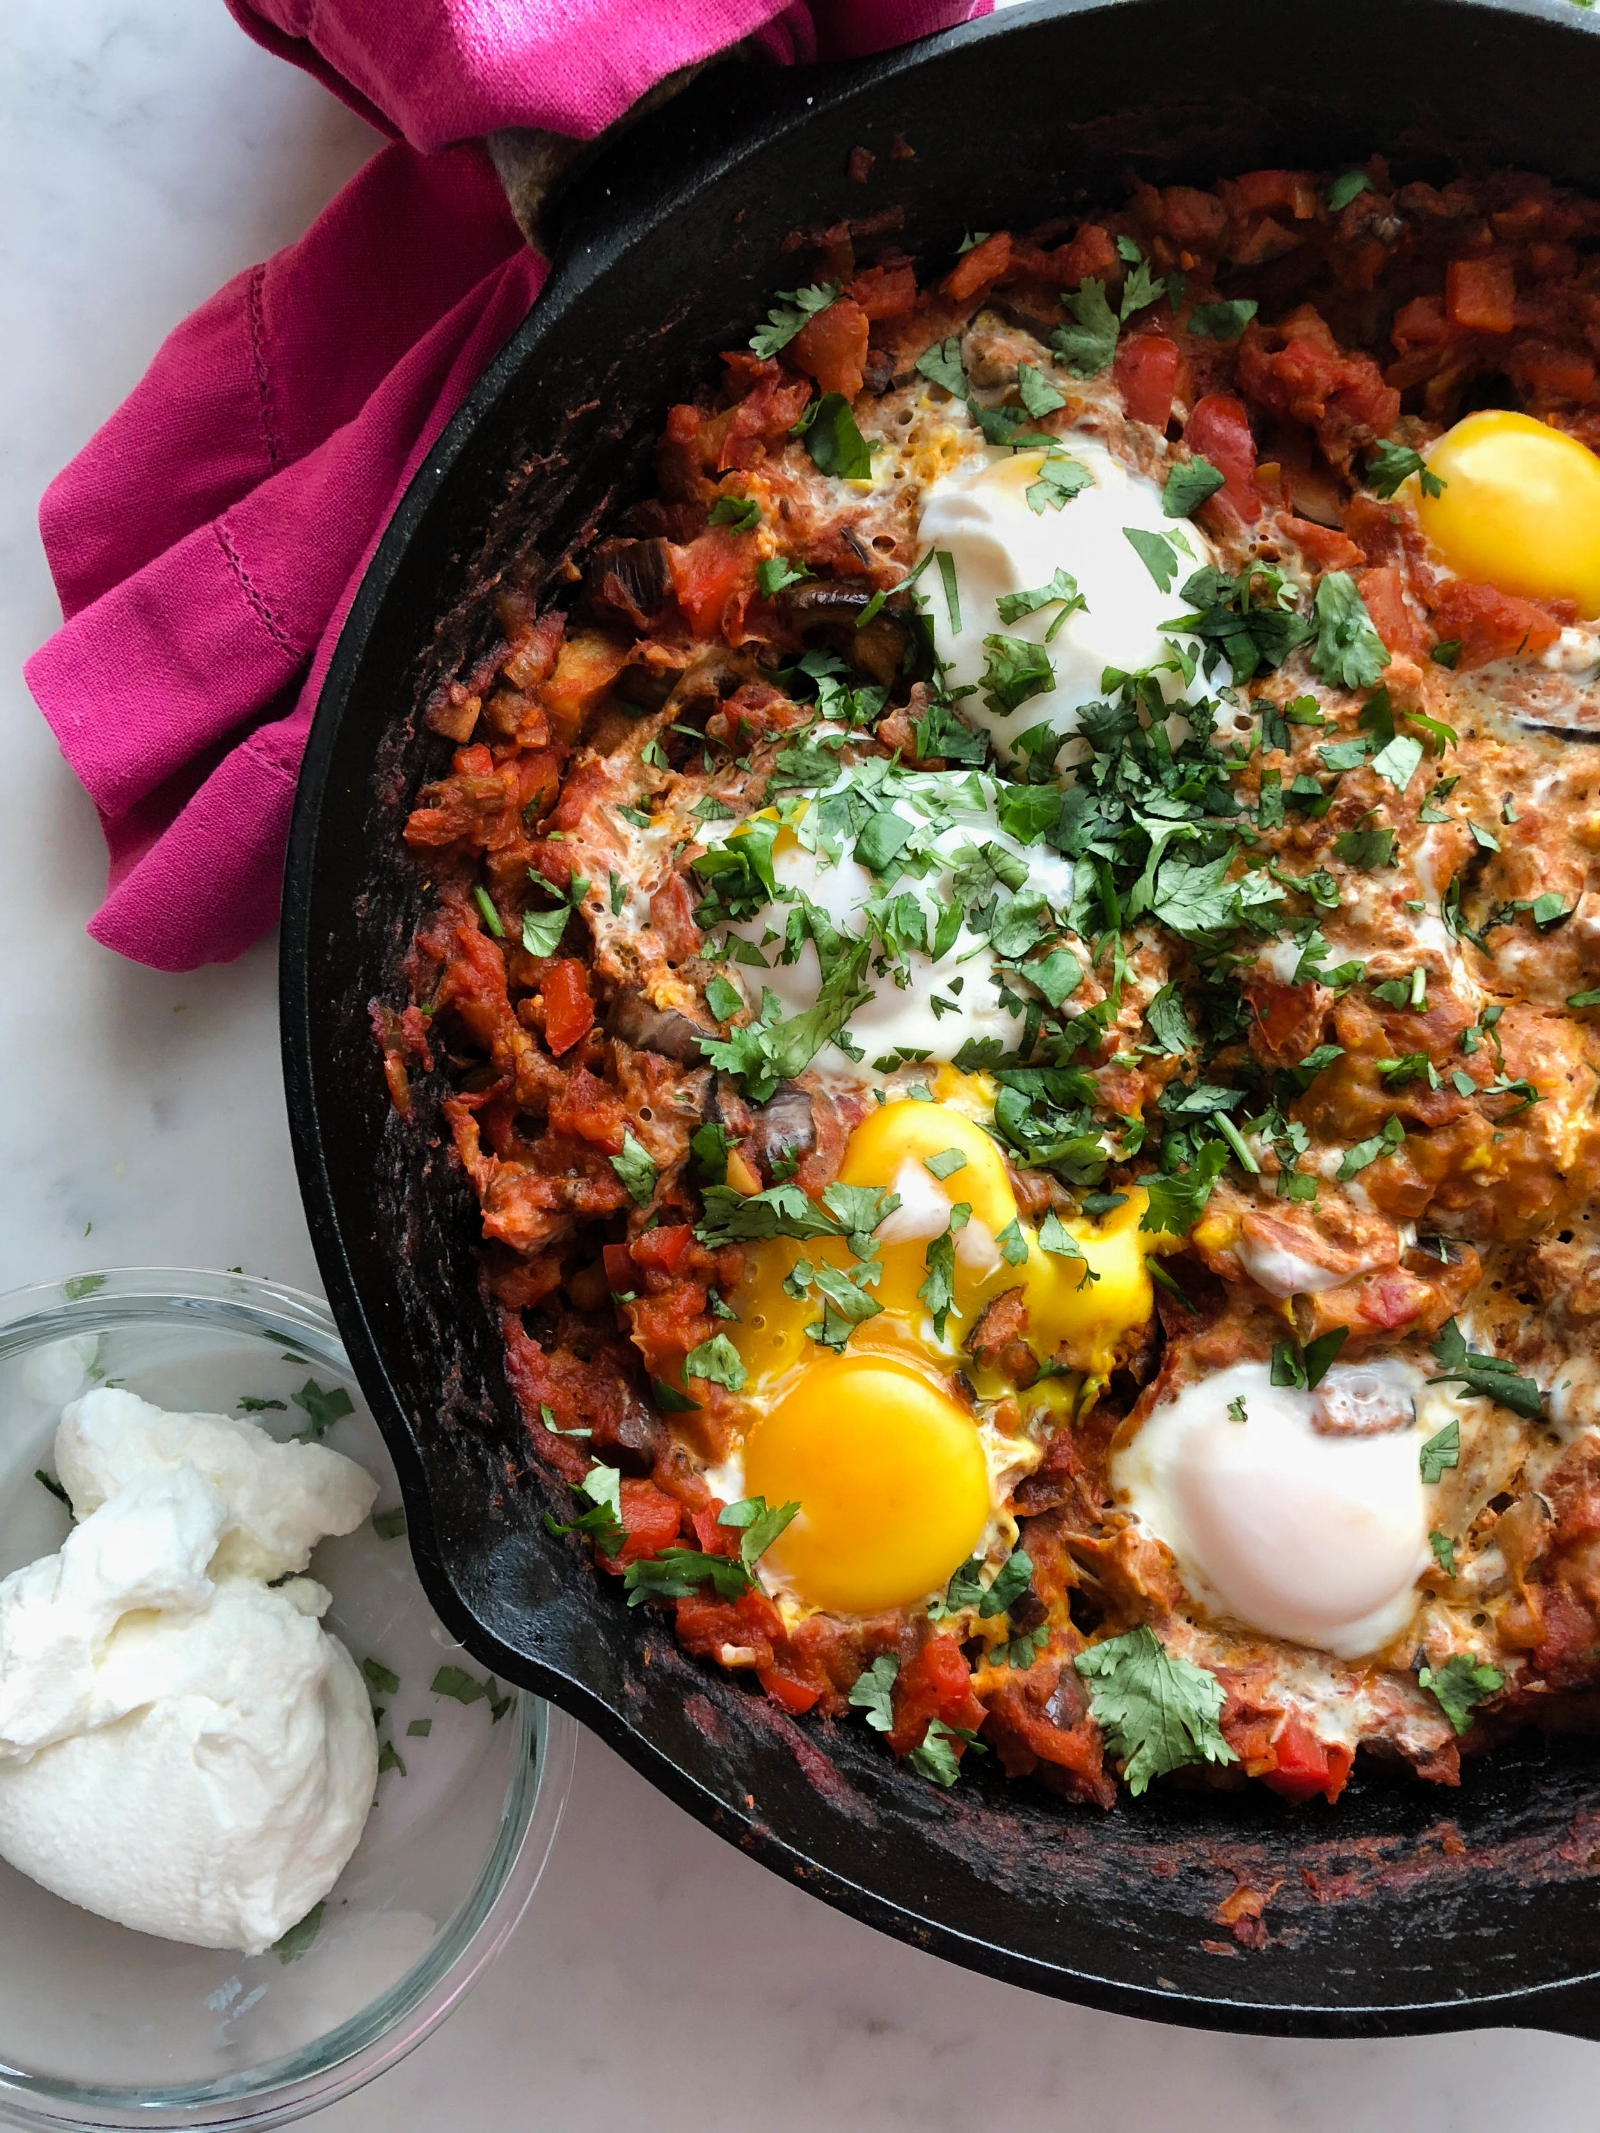 shakshuka - brunch, lunch, or anytime.serves 4 to 61 tablespoon olive oil1 (12-ounce) jar roasted red peppers, drained and coarsely chopped4 garlic cloves, smashed1 to 2 tablespoons harissa1 teaspoon ground cumin1 jar (16 oz.) not just pasta sauceSalt and pepper6 large eggsHandful of minced cilantro, parsley or bothCrumbled feta or sliced oil-cured black olives, for serving (optional)Crusty bread, to serve1. In a large skillet over medium-high heat, heat the olive oil. Add the peppers and cook, undisturbed, until starting to brown, 3 to 5 minutes.2. Add garlic, harissa, and cumin and cook until fragrant, about 30 seconds. Add sauce and season with salt and pepper.3. Reduce heat to medium-low and simmer sauce until slightly thickened, about 5 minutes. Using a small spoon, make a well in the sauce and crack one egg into well. Continue with remaining eggs and season tops of eggs with salt. Spoon a little sauce over the edges of the whites to partially cover them, leaving yolks exposed.4. Cover and cook, simmering very gently and reducing heat if necessary, until whites are set and yolks are still runny, about 10 minutes. Continue basting the egg whites with sauce as they cook.5. Sprinkle with cilantro or parsley and the optional toppings. Serve with crusty bread.